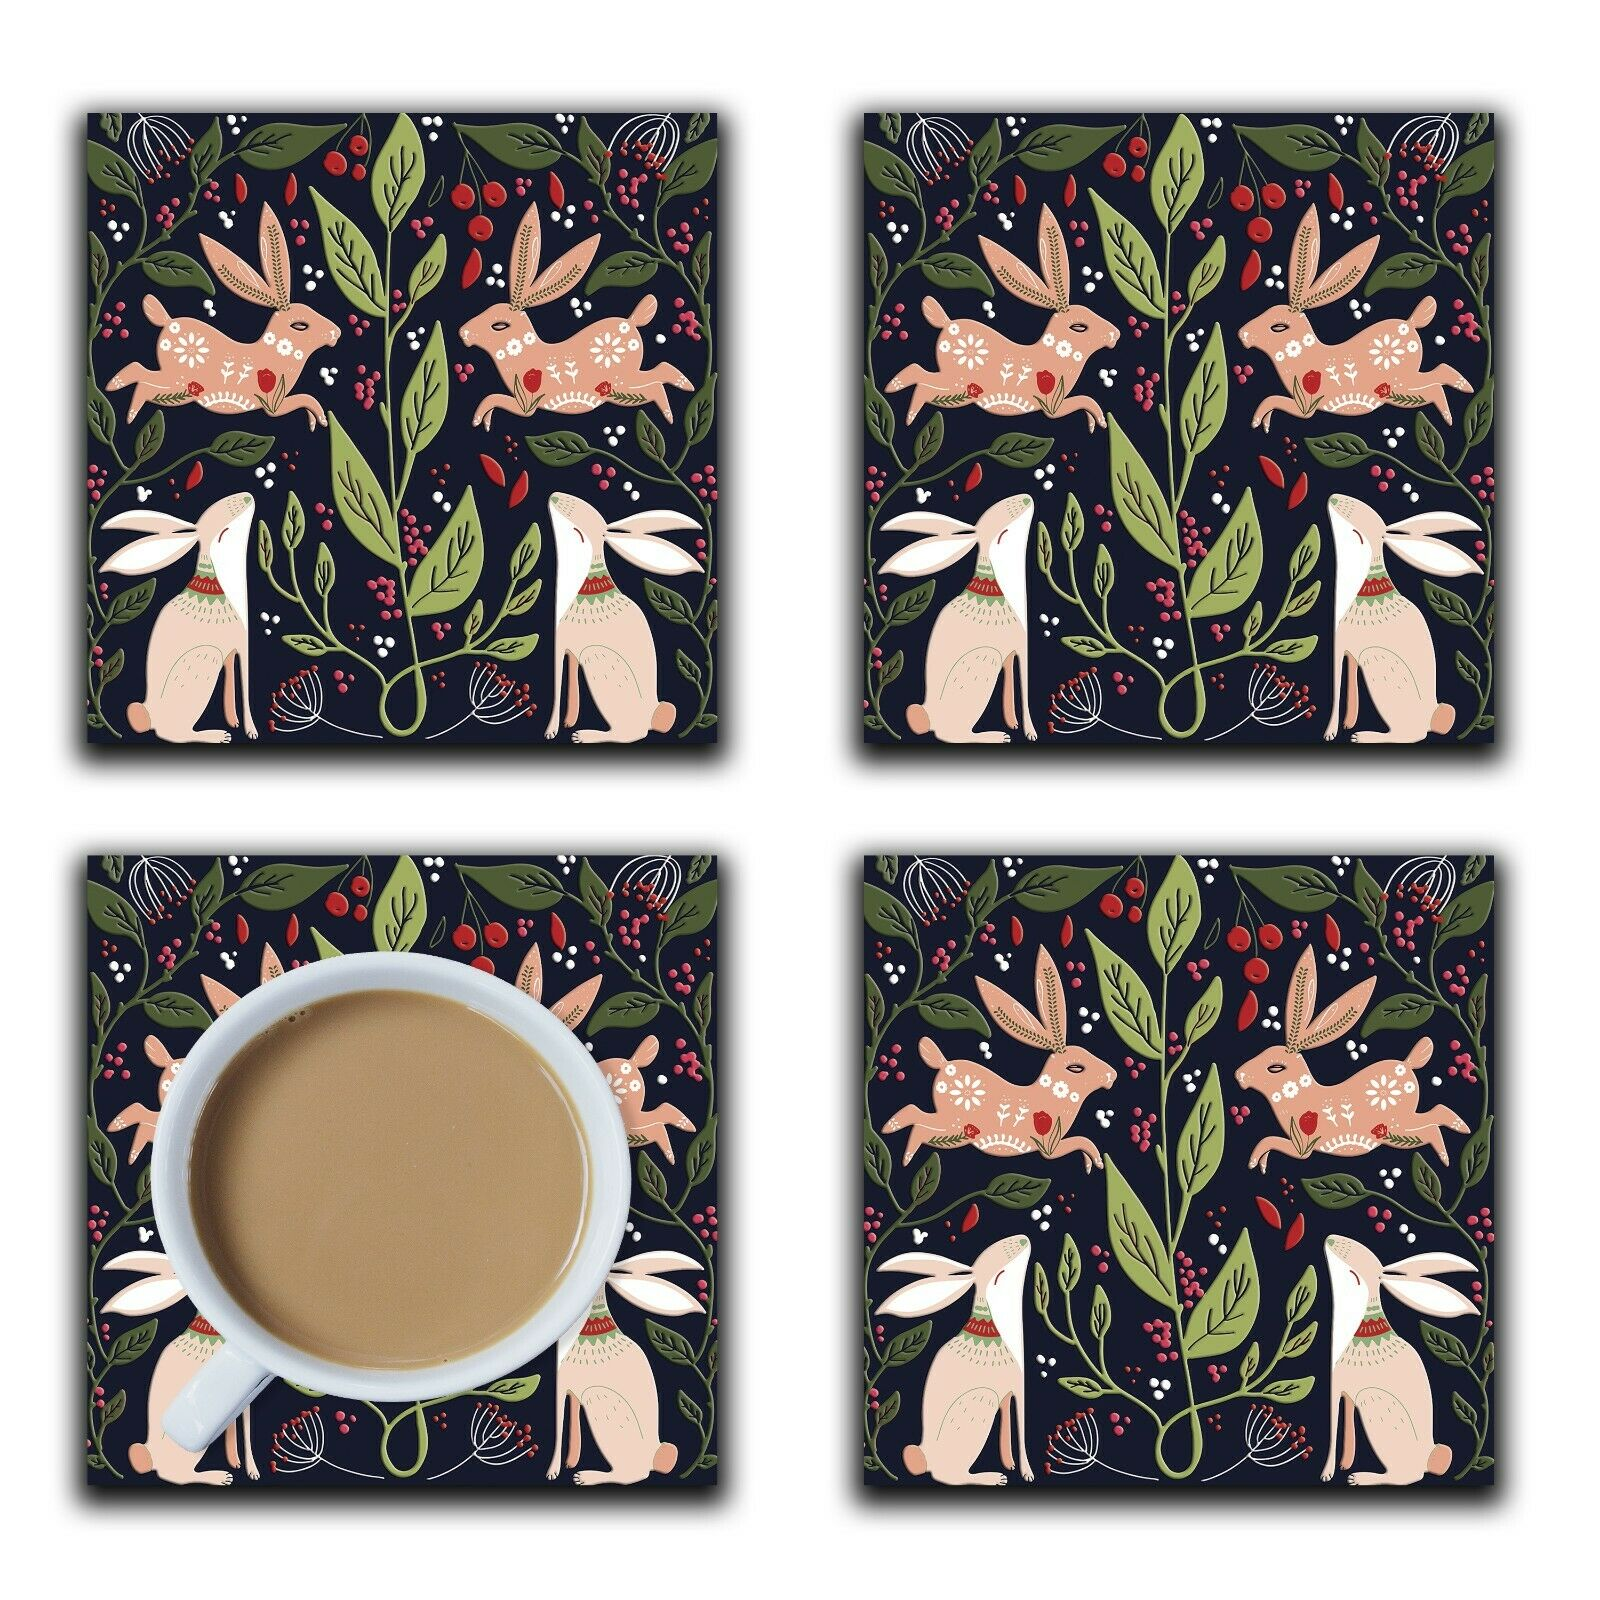 Embossi Printed Scandinavian Country Rabbits, wood or ceramic tile, set of 4 Coasters